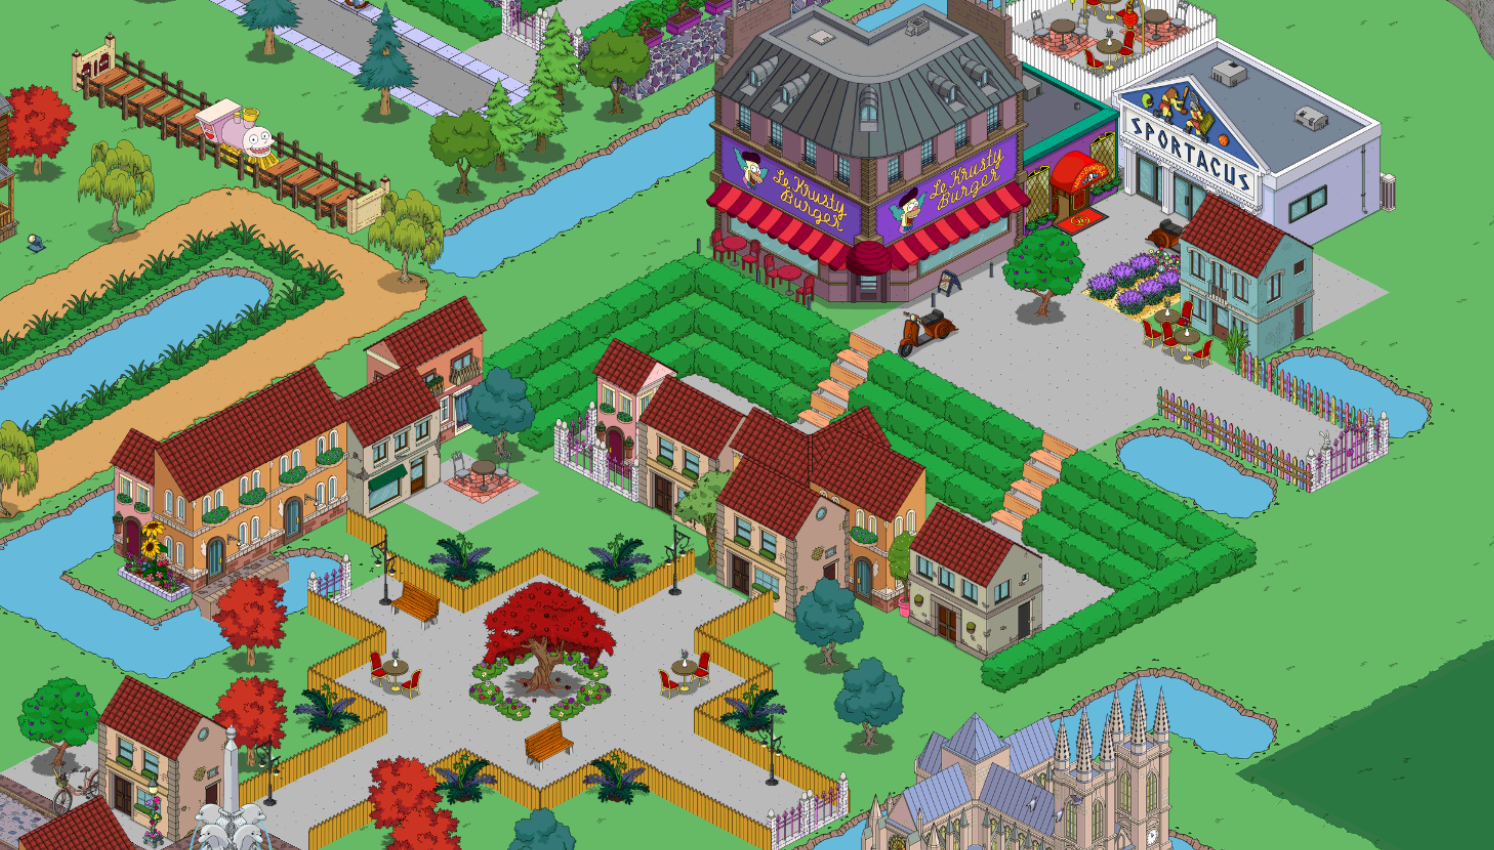 tsto_Jobs_Event_Redesign_Project.png